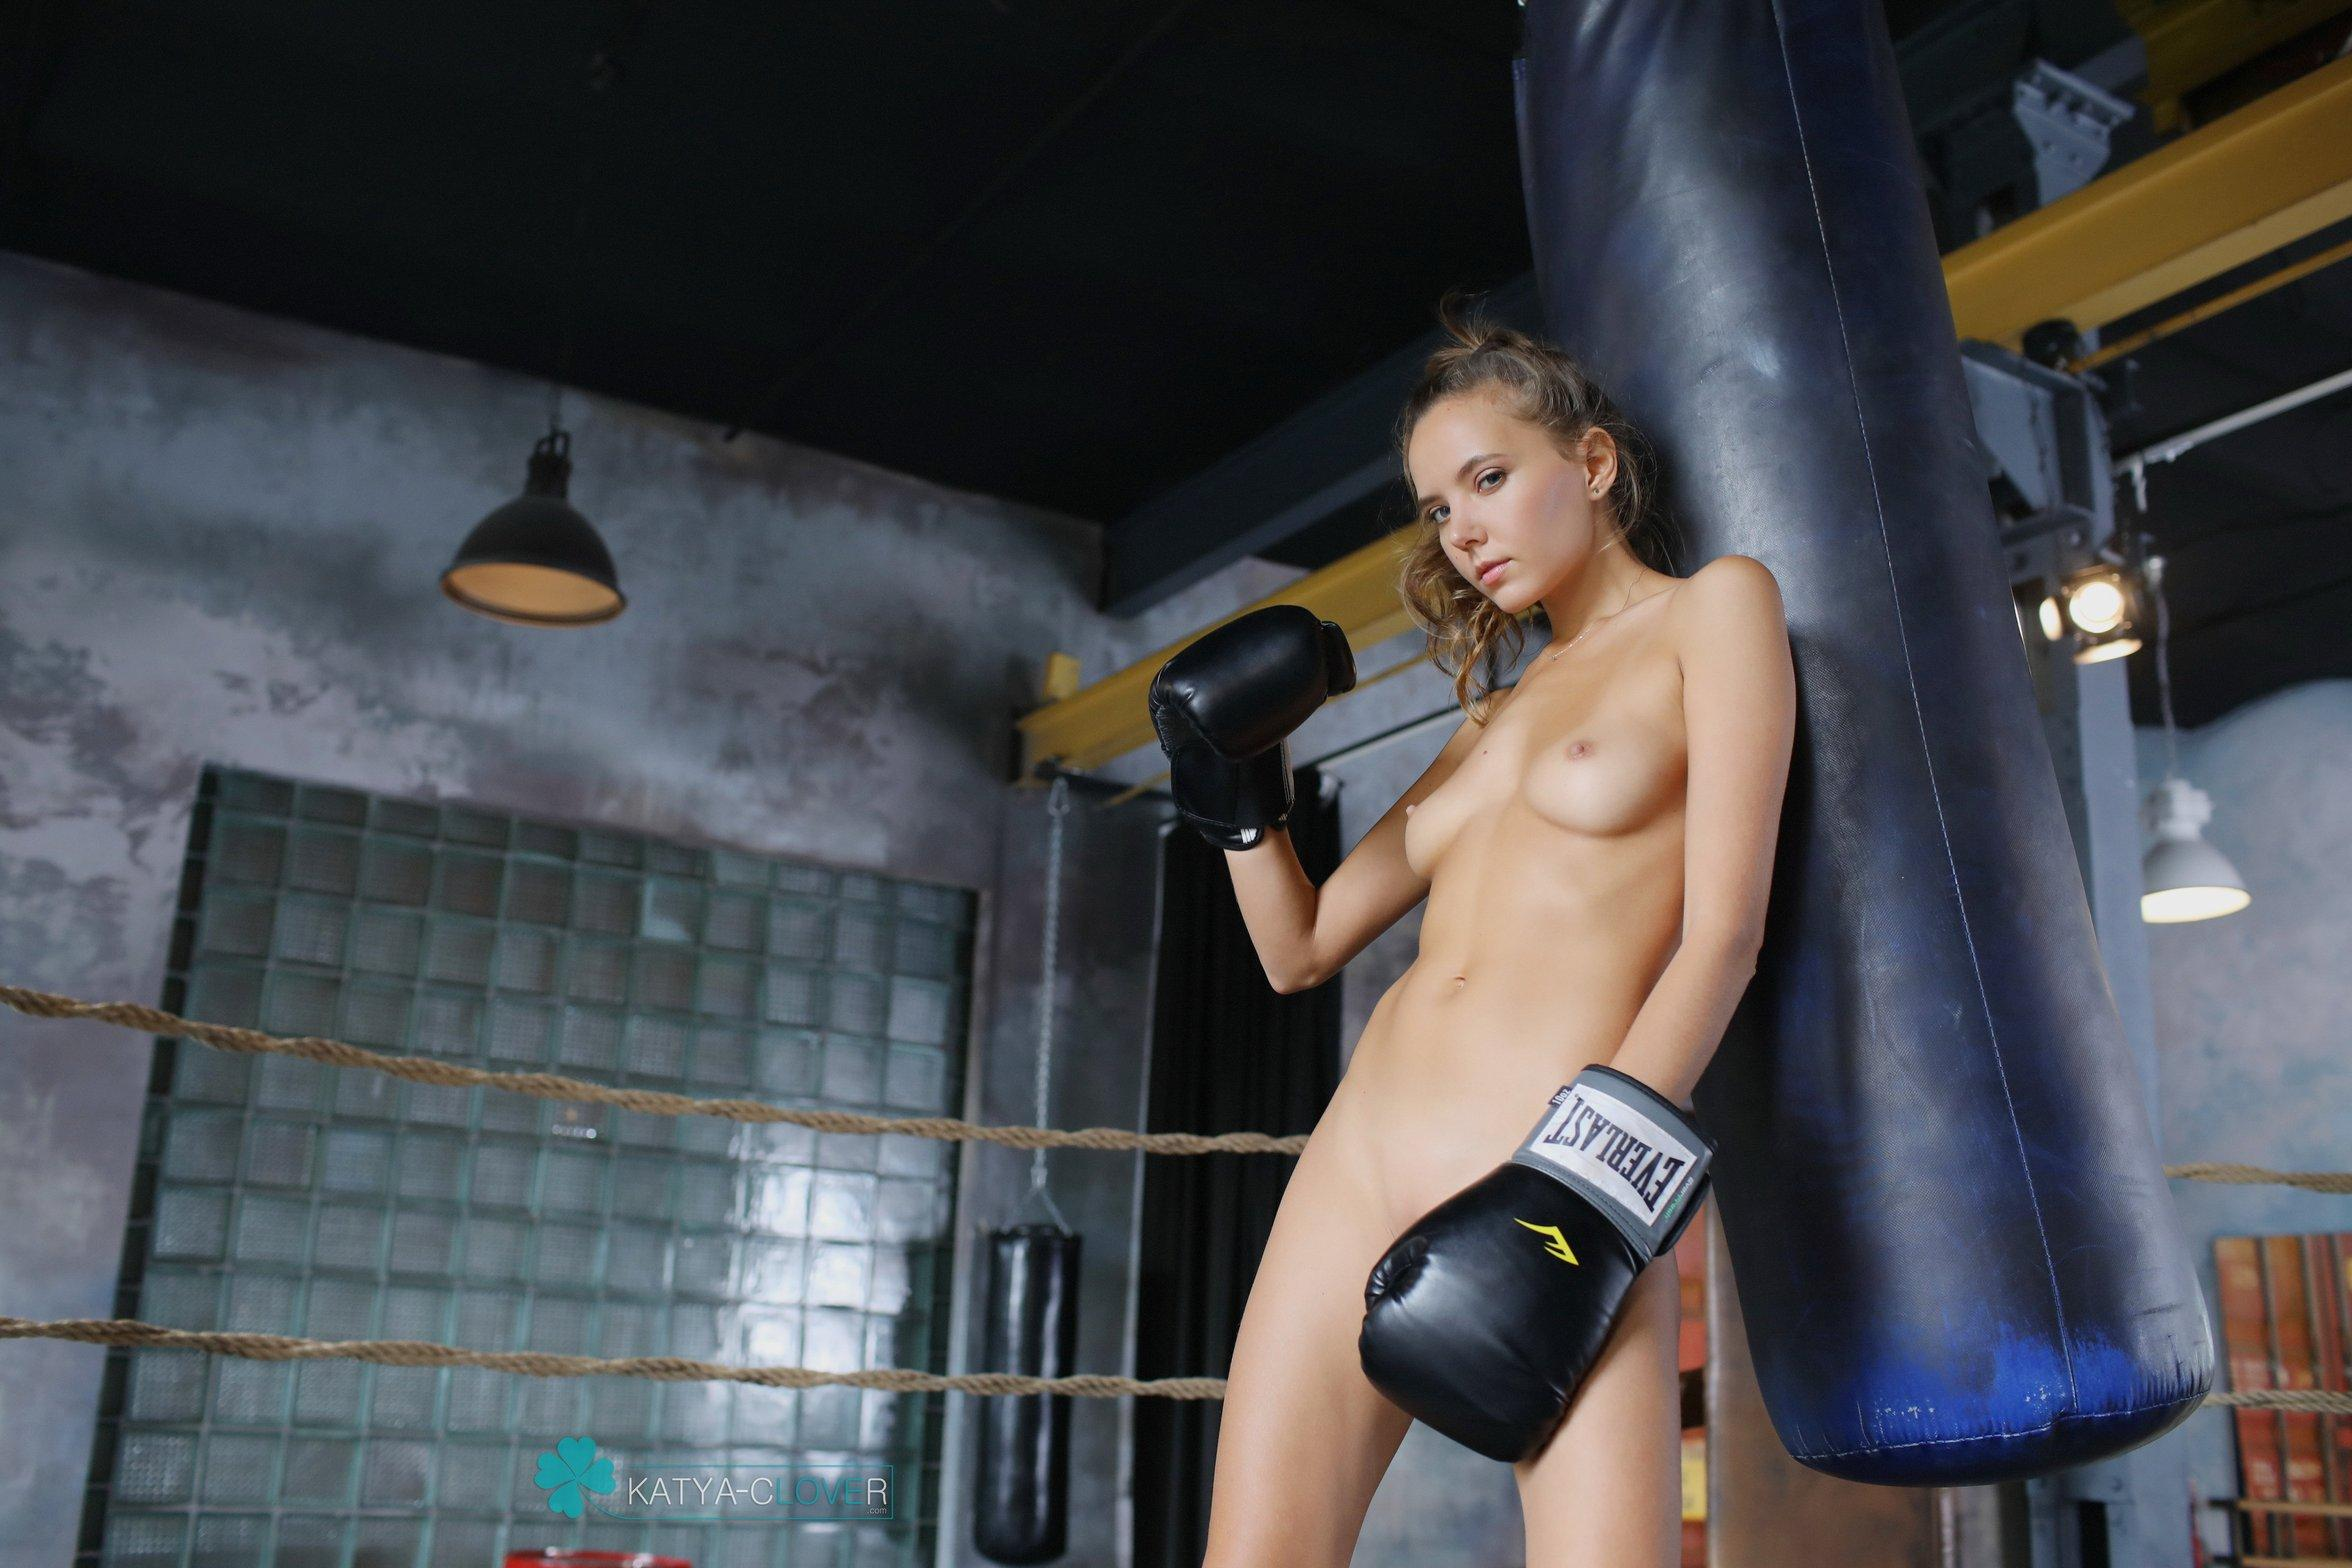 Boxing Ring Naked Girls In An Insane Threesome Orgy With A New Guy In The Gym